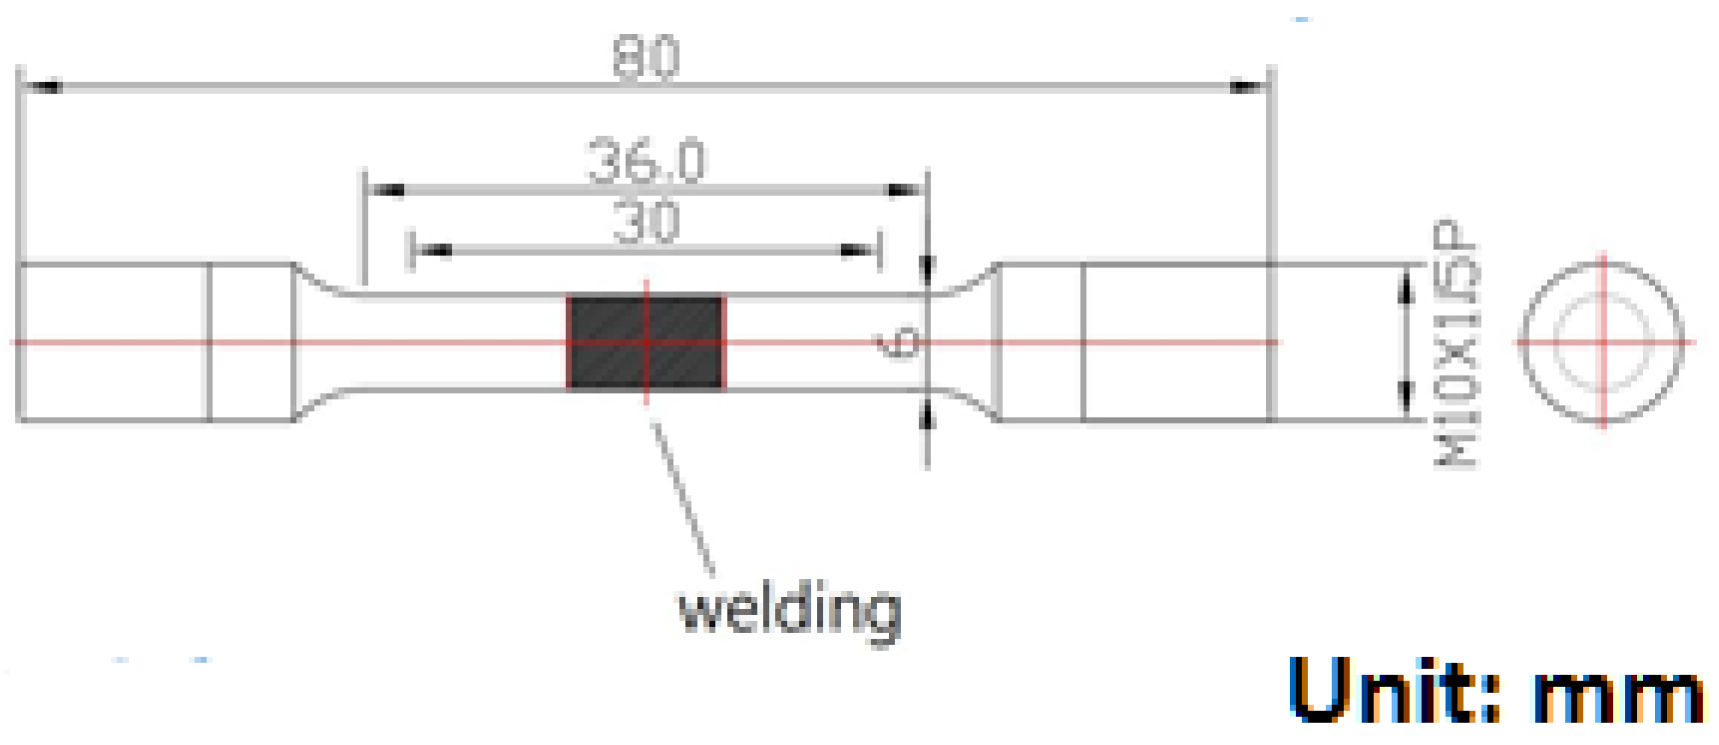 tensile properties and microstructural analysis of Analysis of physical properties can  structural or microstructure analysis of  mechanical testing details the laboratory's capabilities for tensile and.